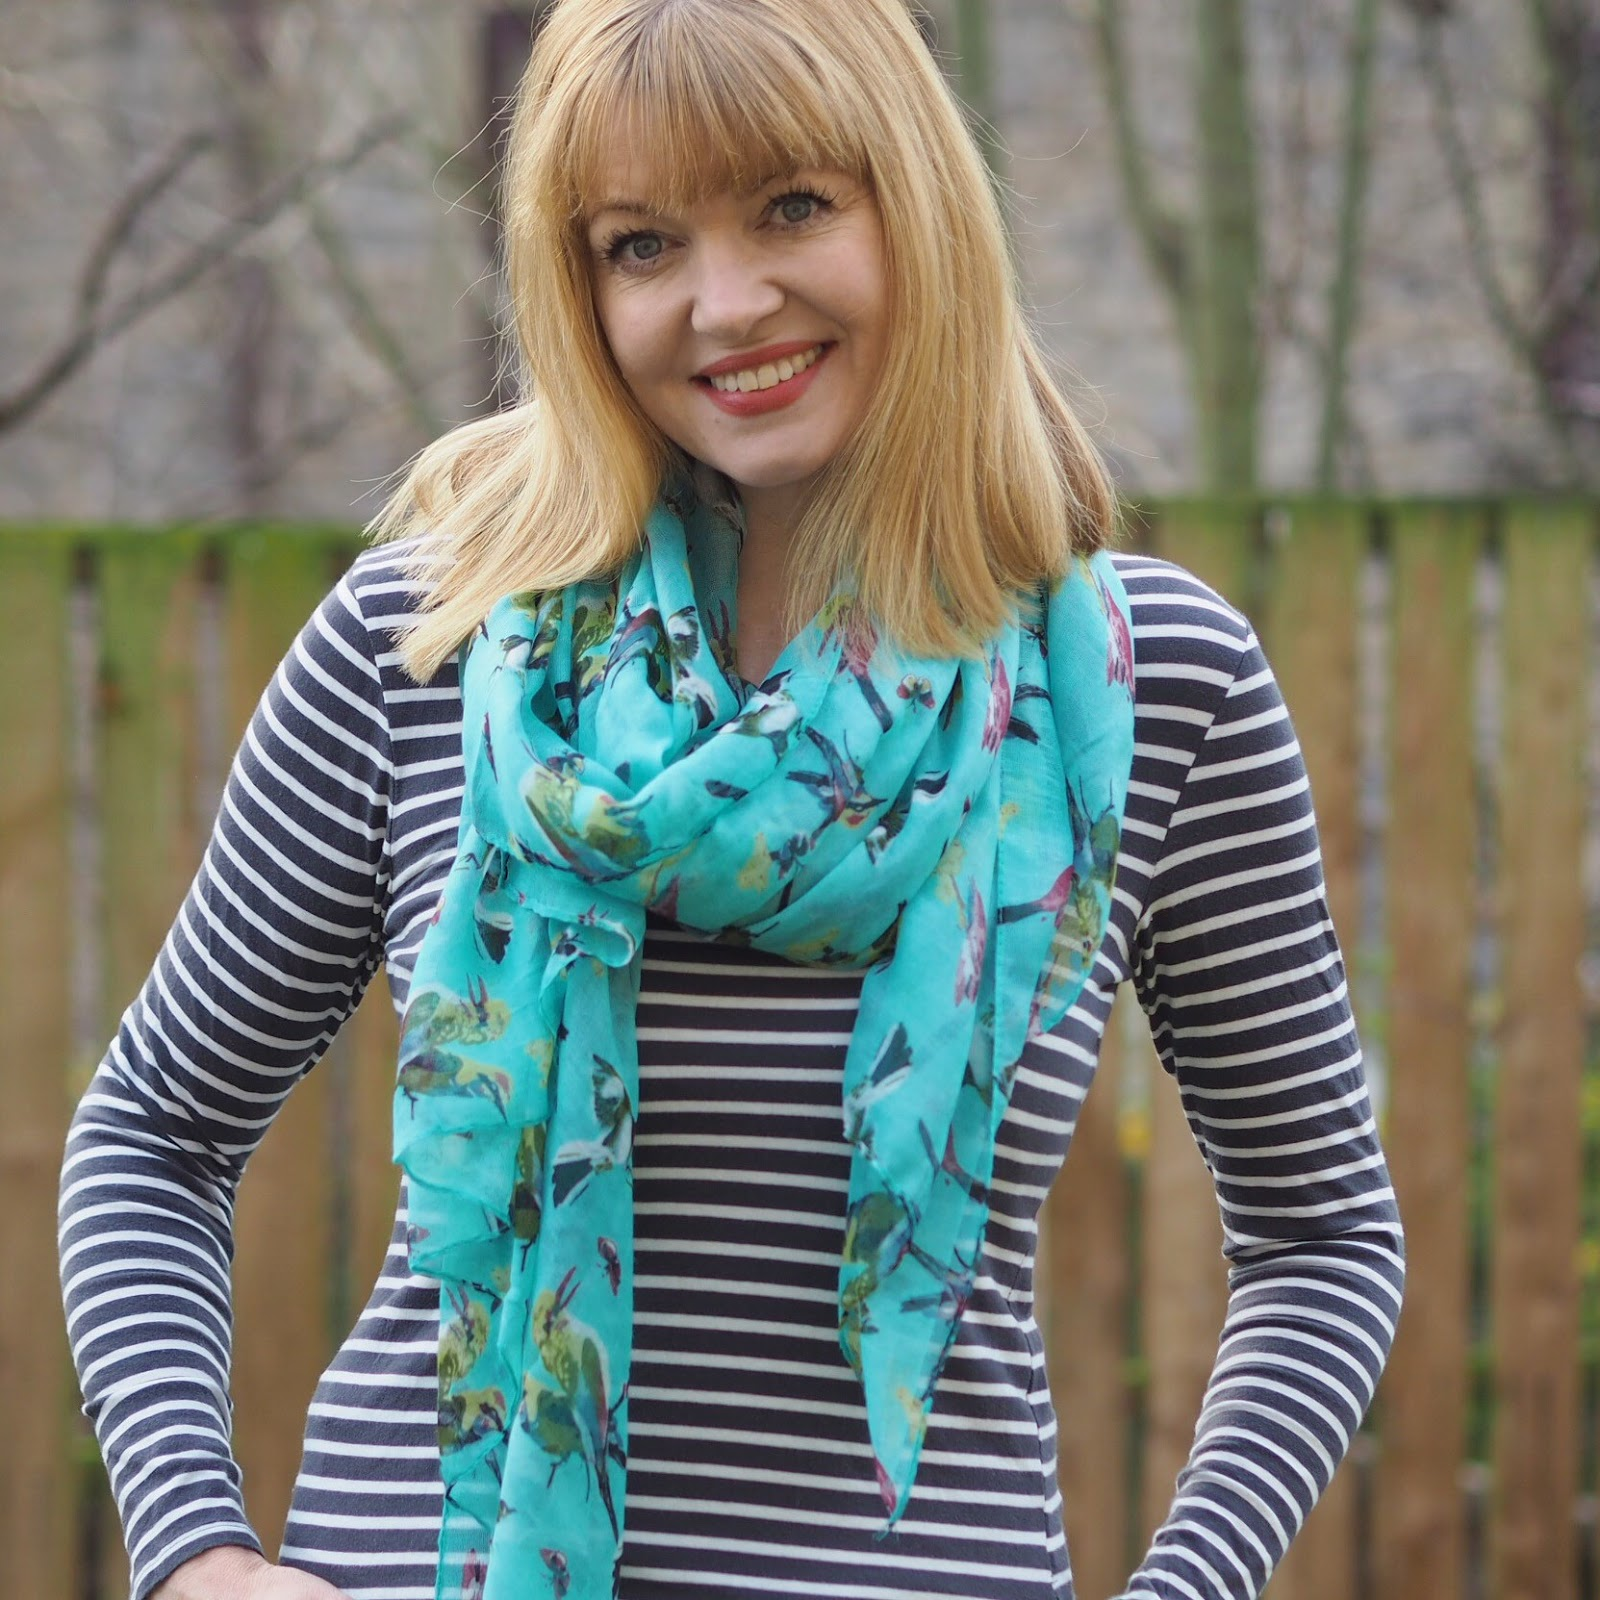 Aqua birds of paradise scarf, £12.50